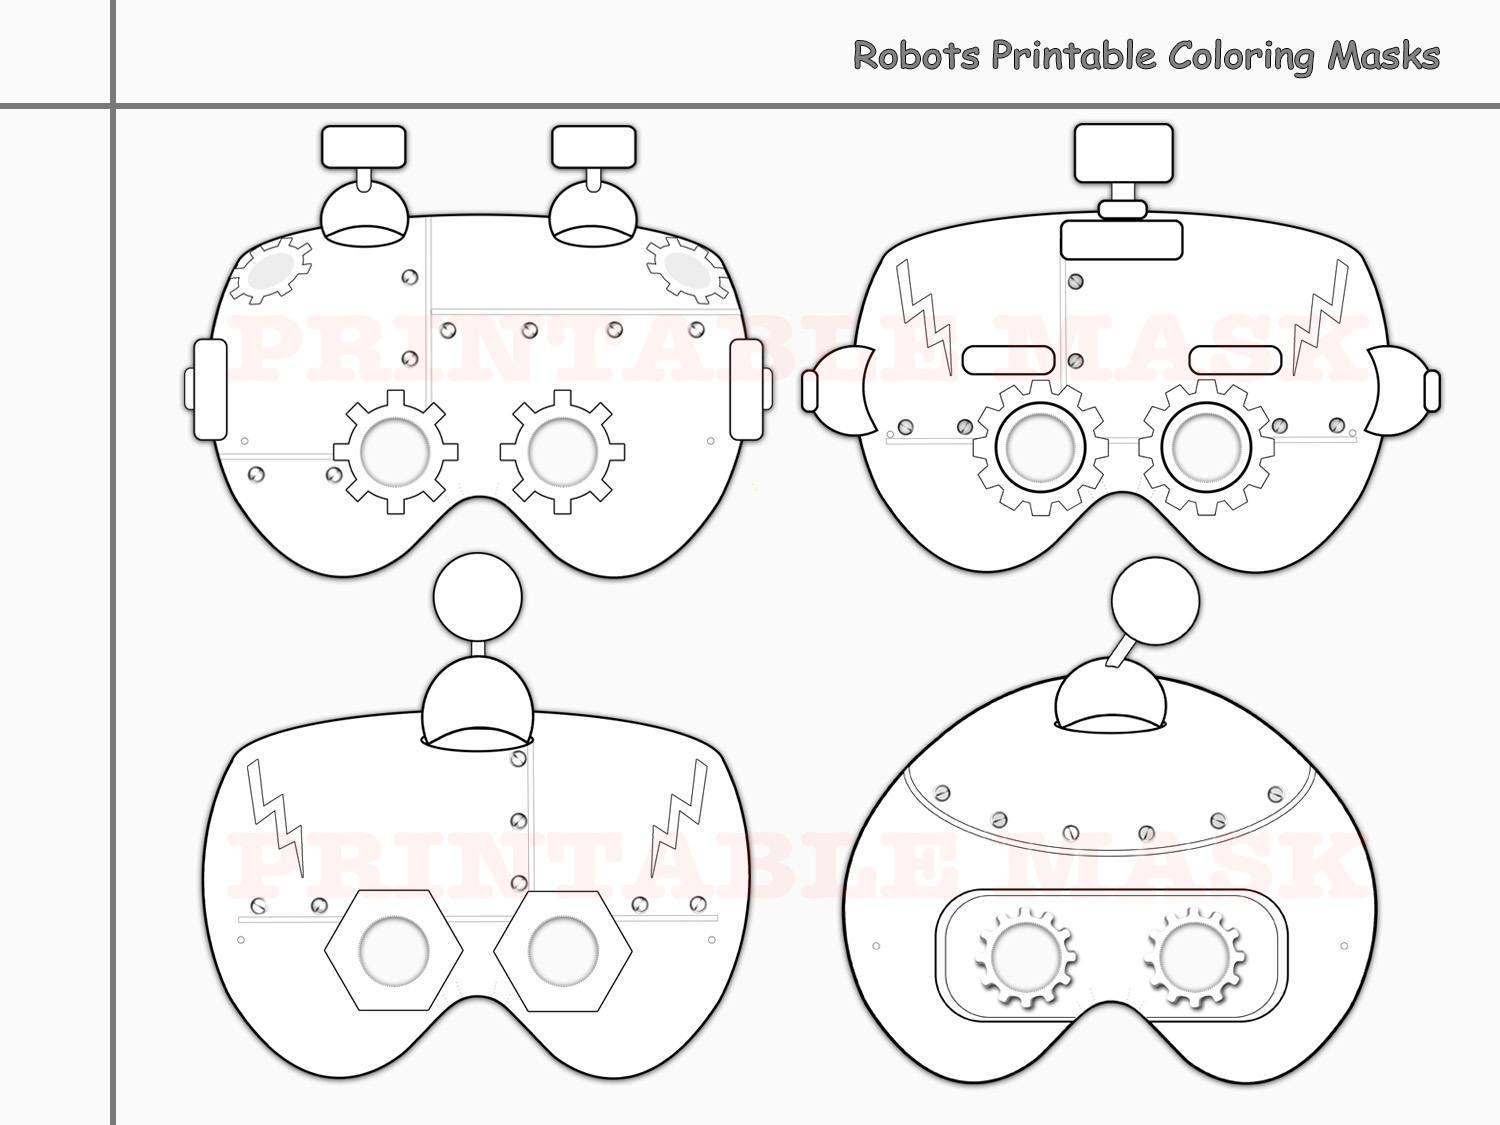 Robots Printable Coloring Masks By Holidaypartystar On Zibbet